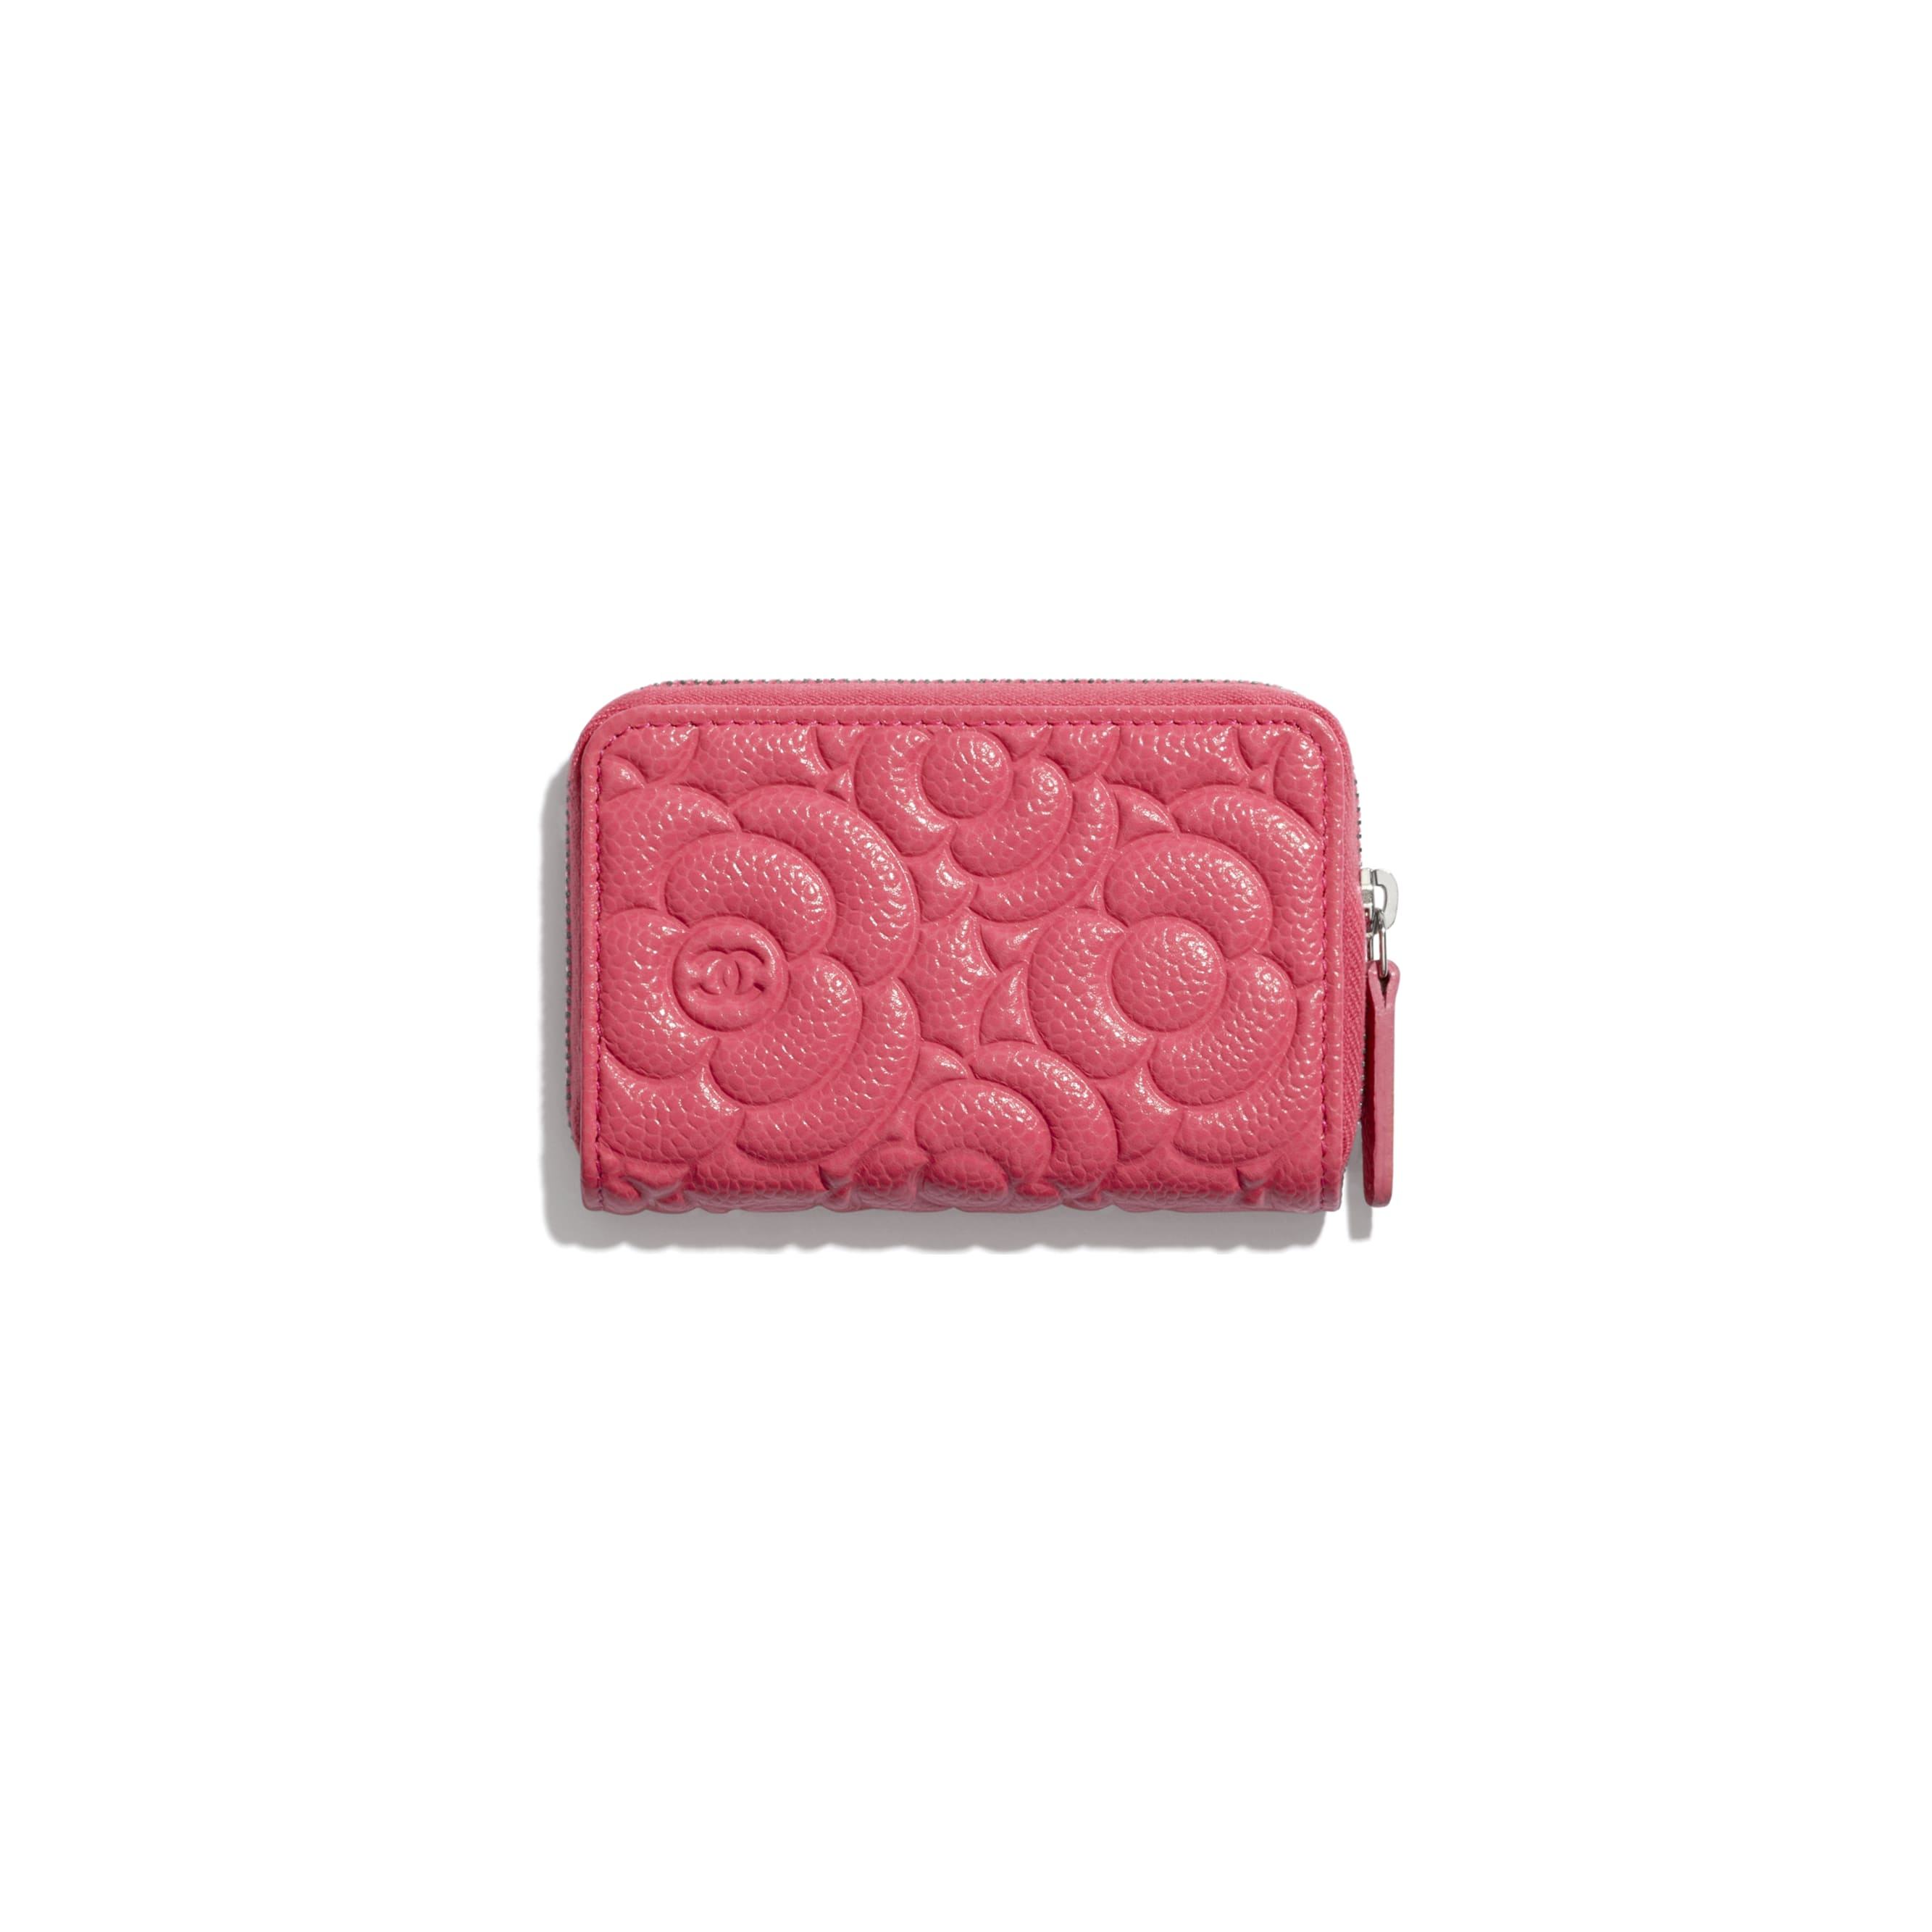 Zipped Coin Purse - Pink - Grained Calfskin & Silver Metal - CHANEL - Alternative view - see standard sized version